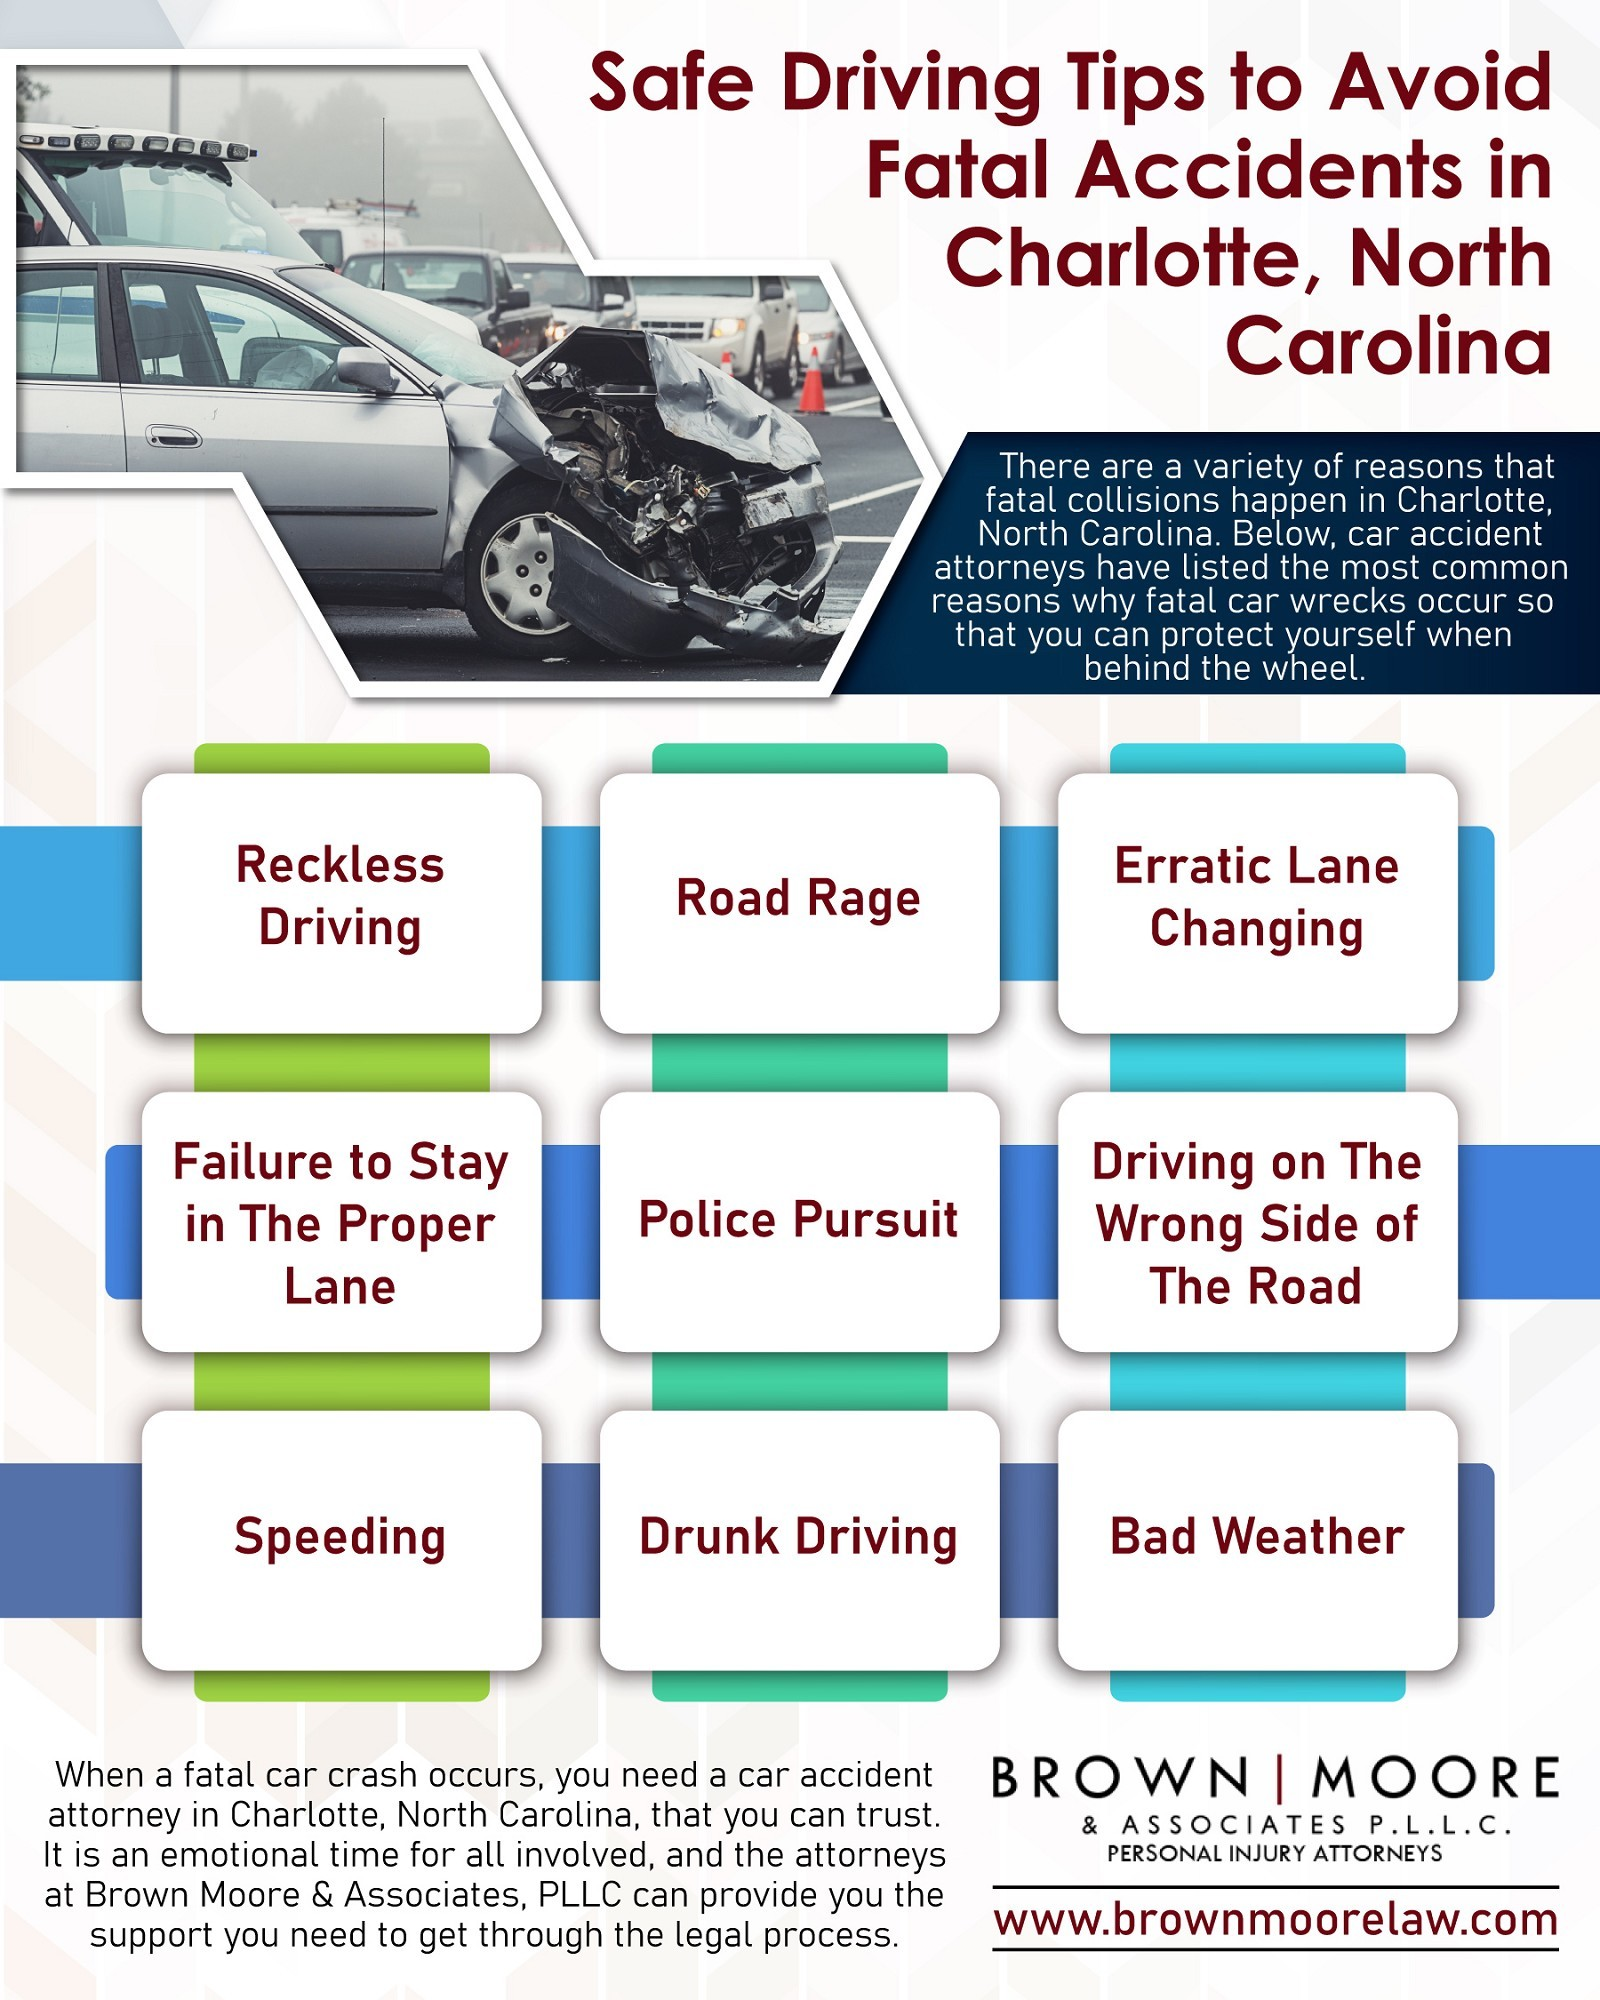 Safe Driving Tips To Avoid Fatal Accidents In Charlotte, NC